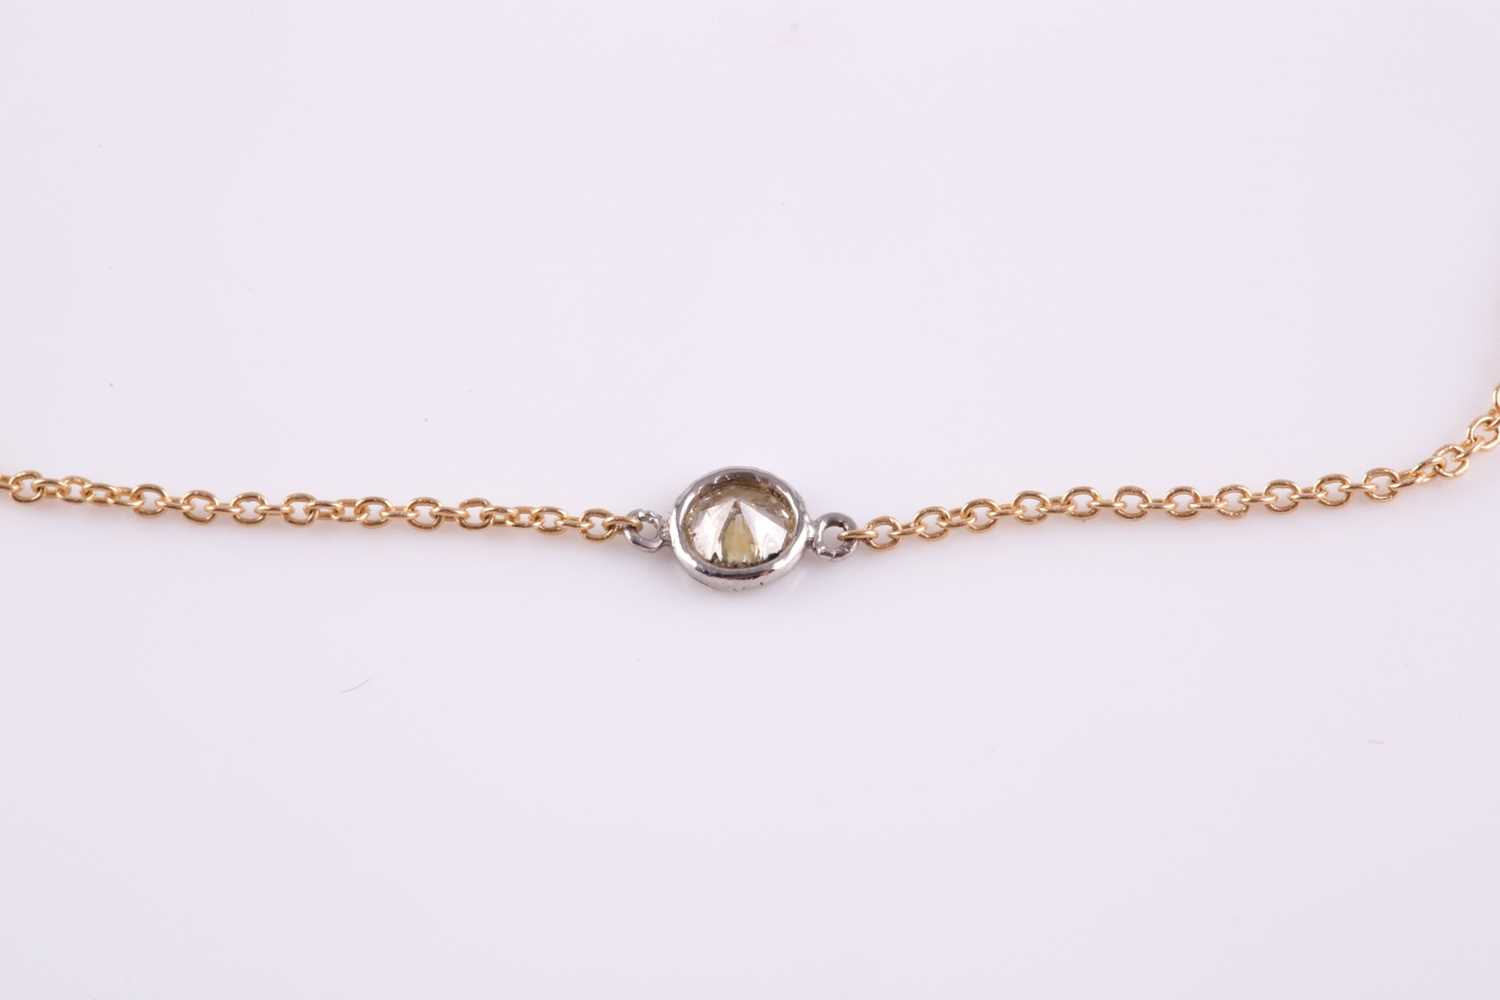 An 18ct yellow gold and diamond necklace, the chain set with a collet-mounted round brilliant-cut - Image 2 of 2